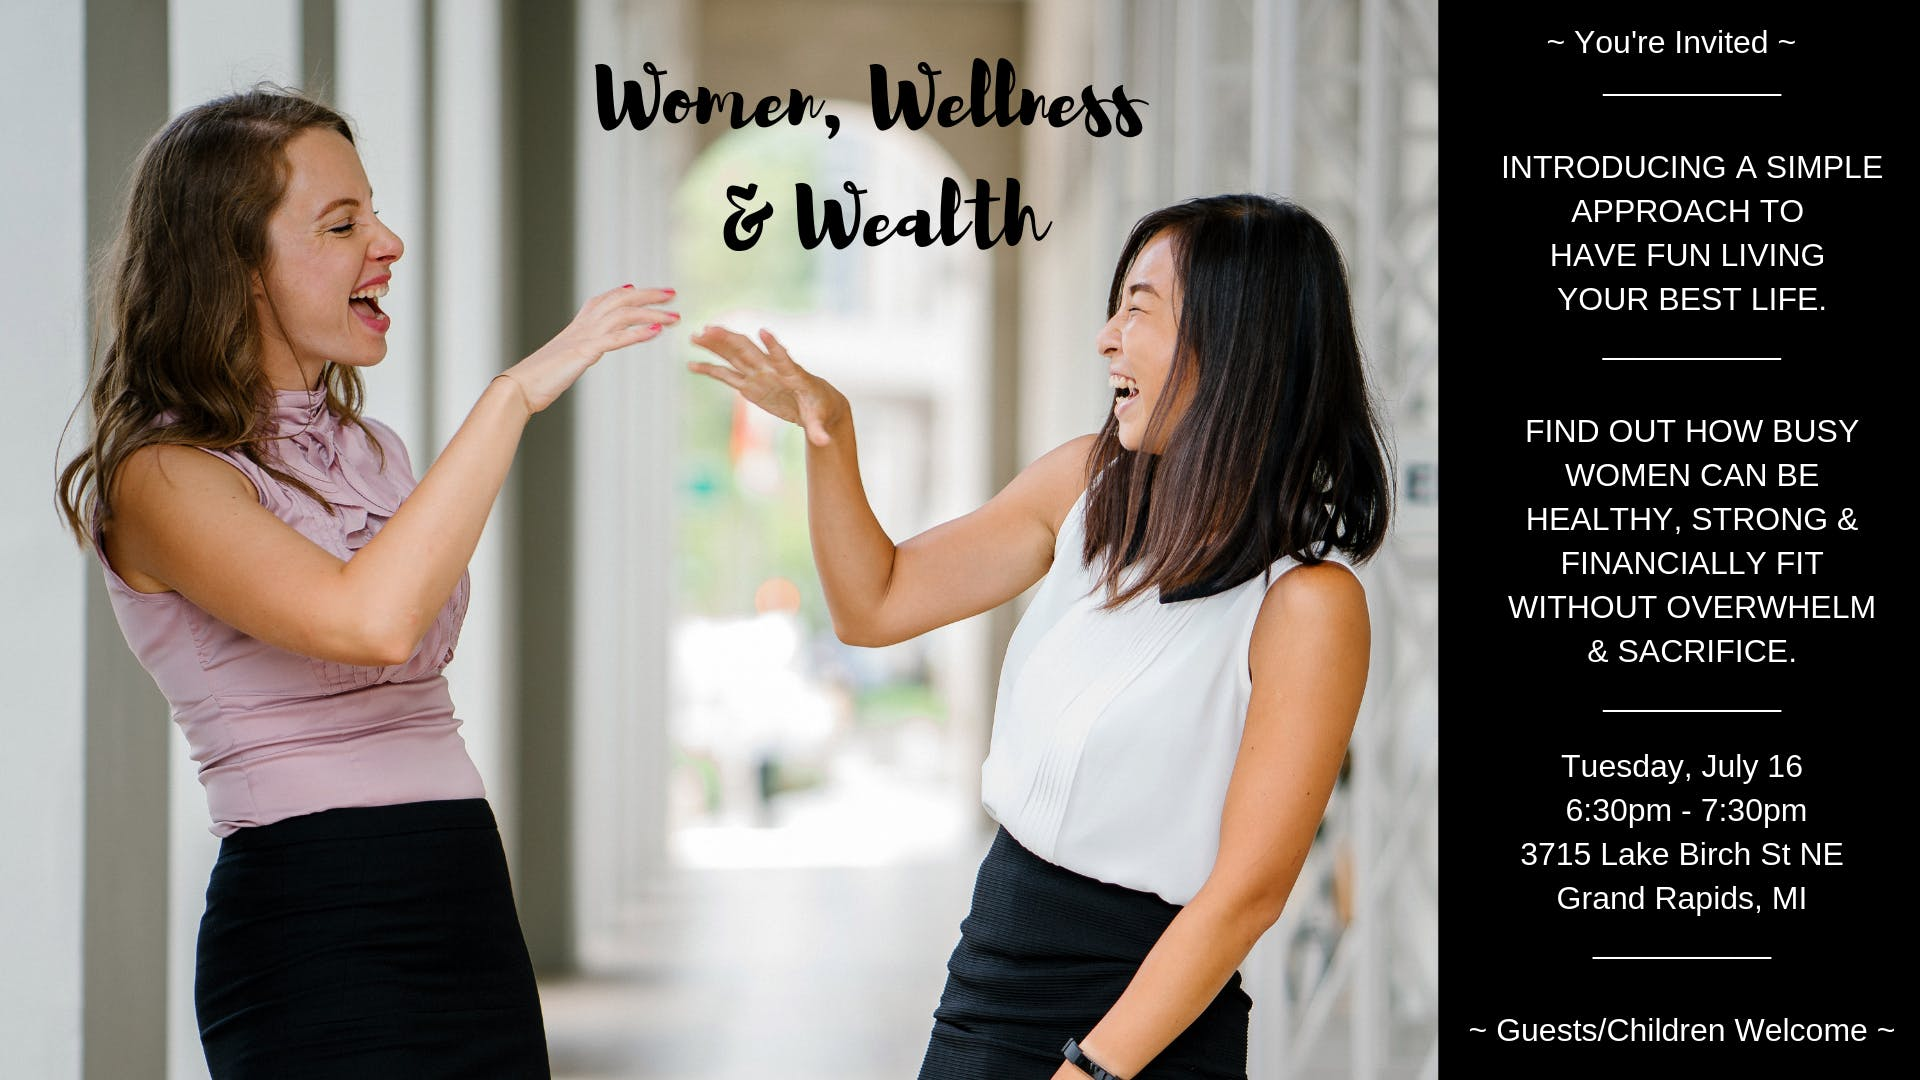 Women, Wellness & Wealth